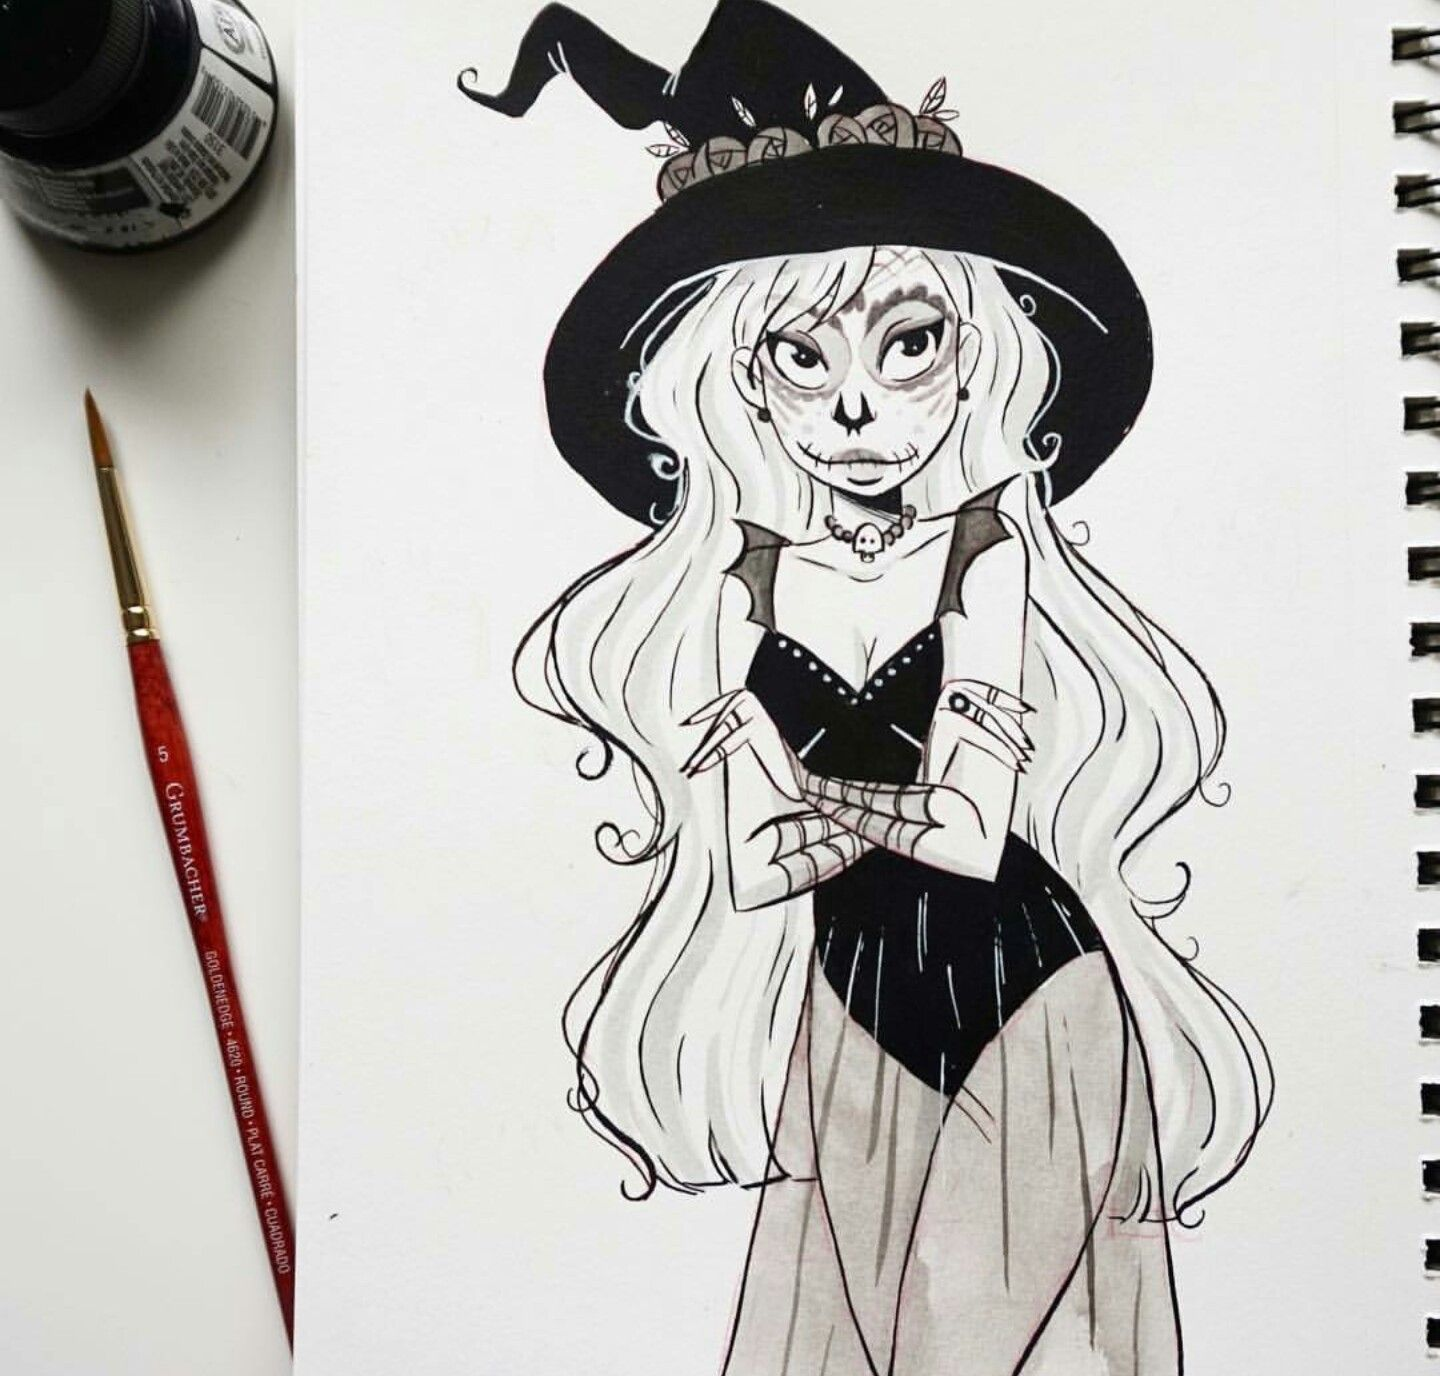 Pin By Rae Appel On Wixen Art Friend Fun Challenges Inktober